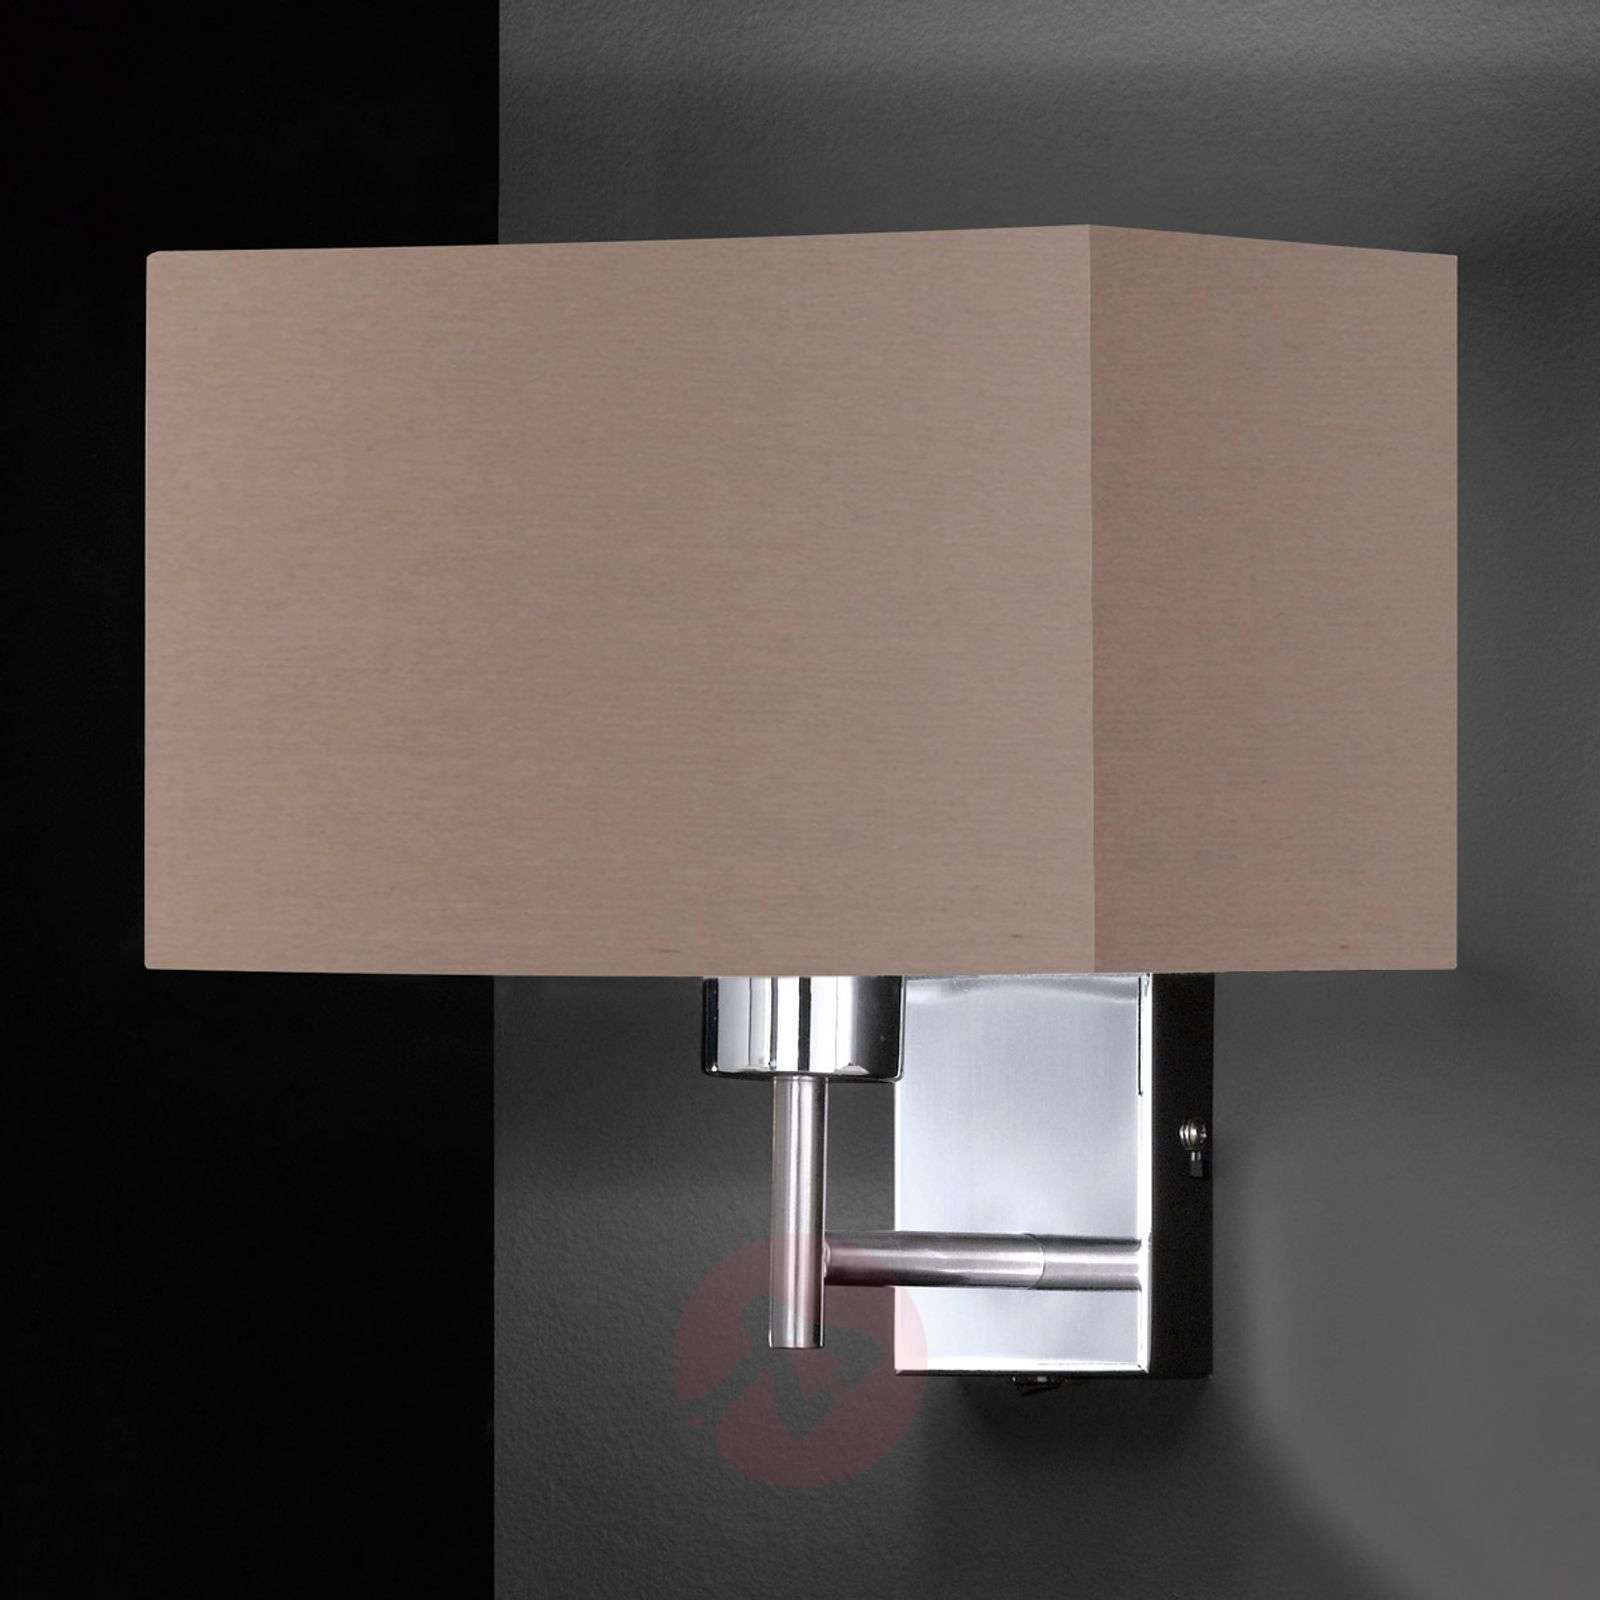 Kempten A Modern Wall Light 4581172 01 ...